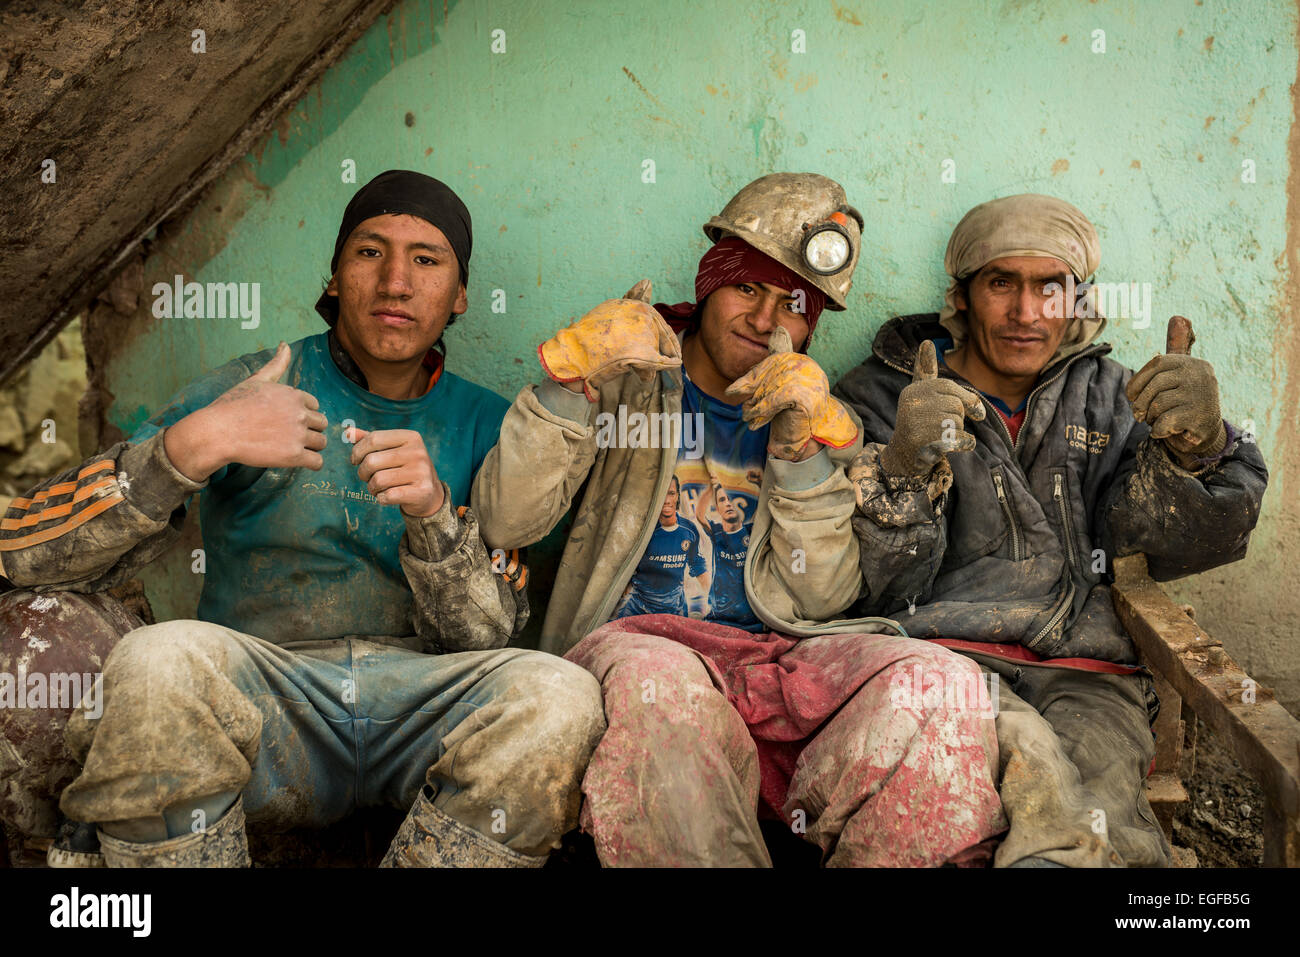 Portrait of Luiz (Centre) with 2 other miners, The Mines of Cerro Rico, Potosi, Southern Altiplano, Bolivia - Stock Image